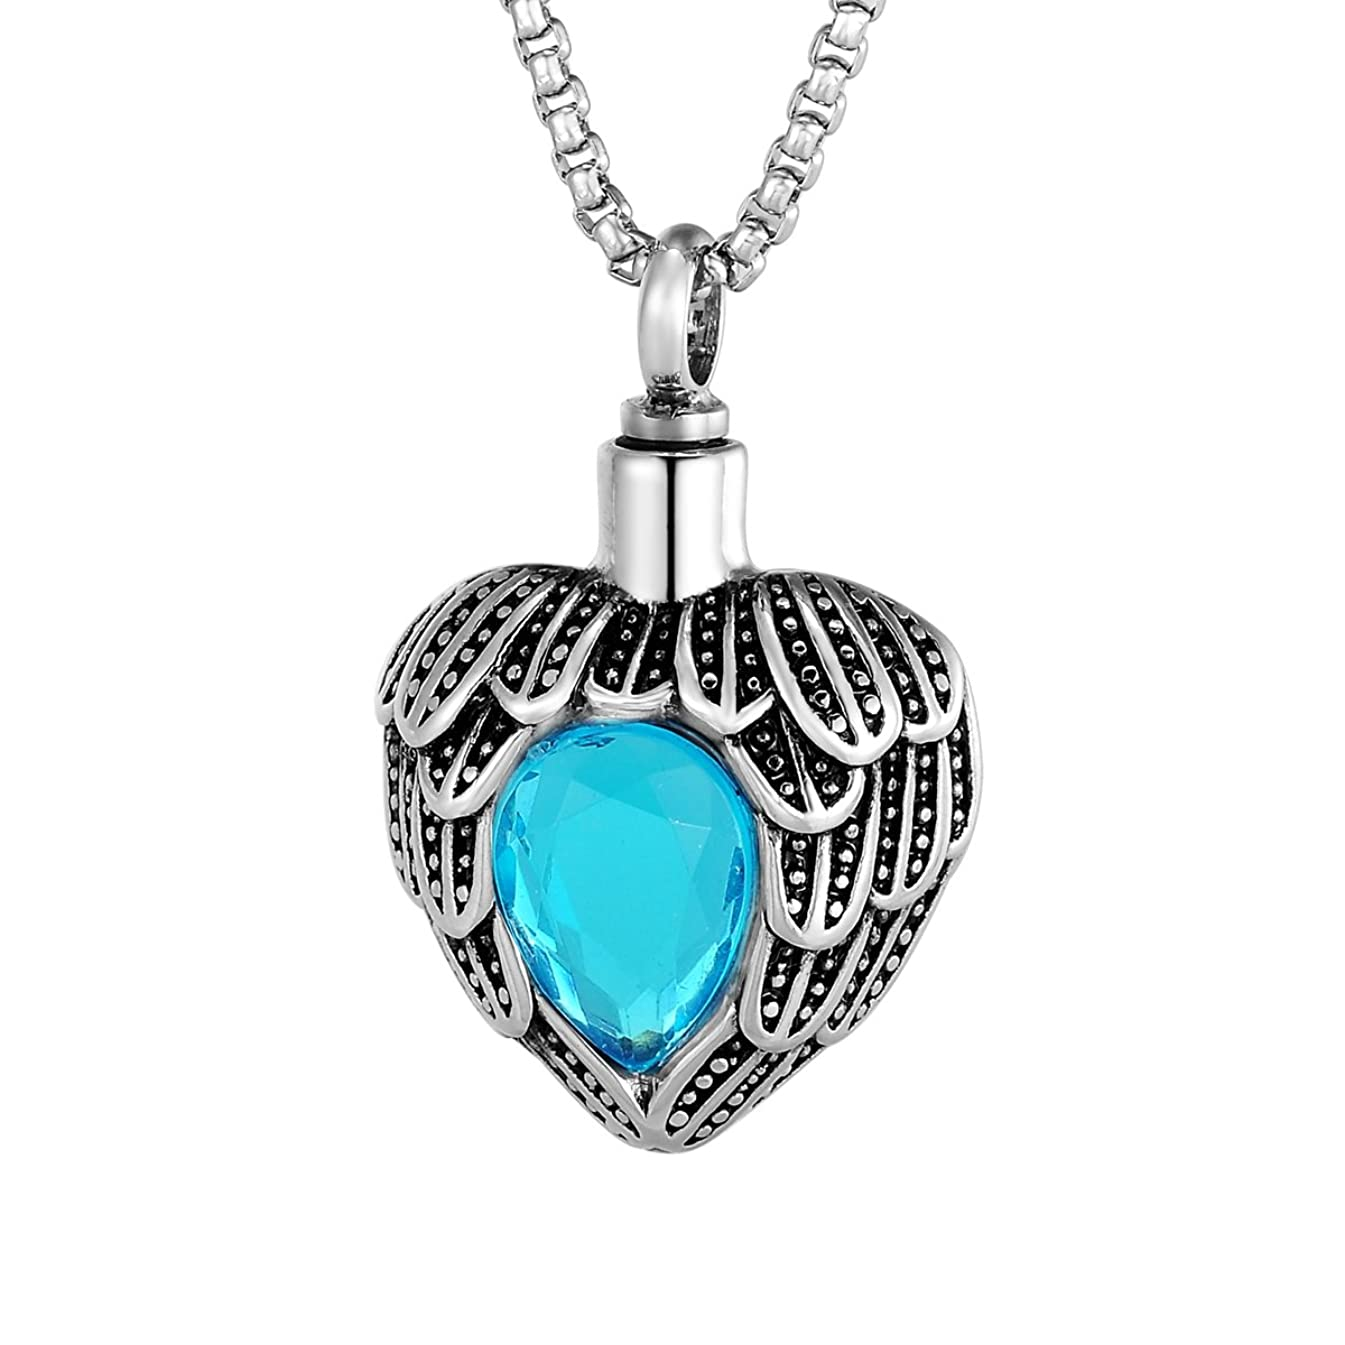 HOUSWEETY Stainless Steel Angle Wing Birthstone Heart Urn Necklace Cremation Jewelry Memorial Pendant-December